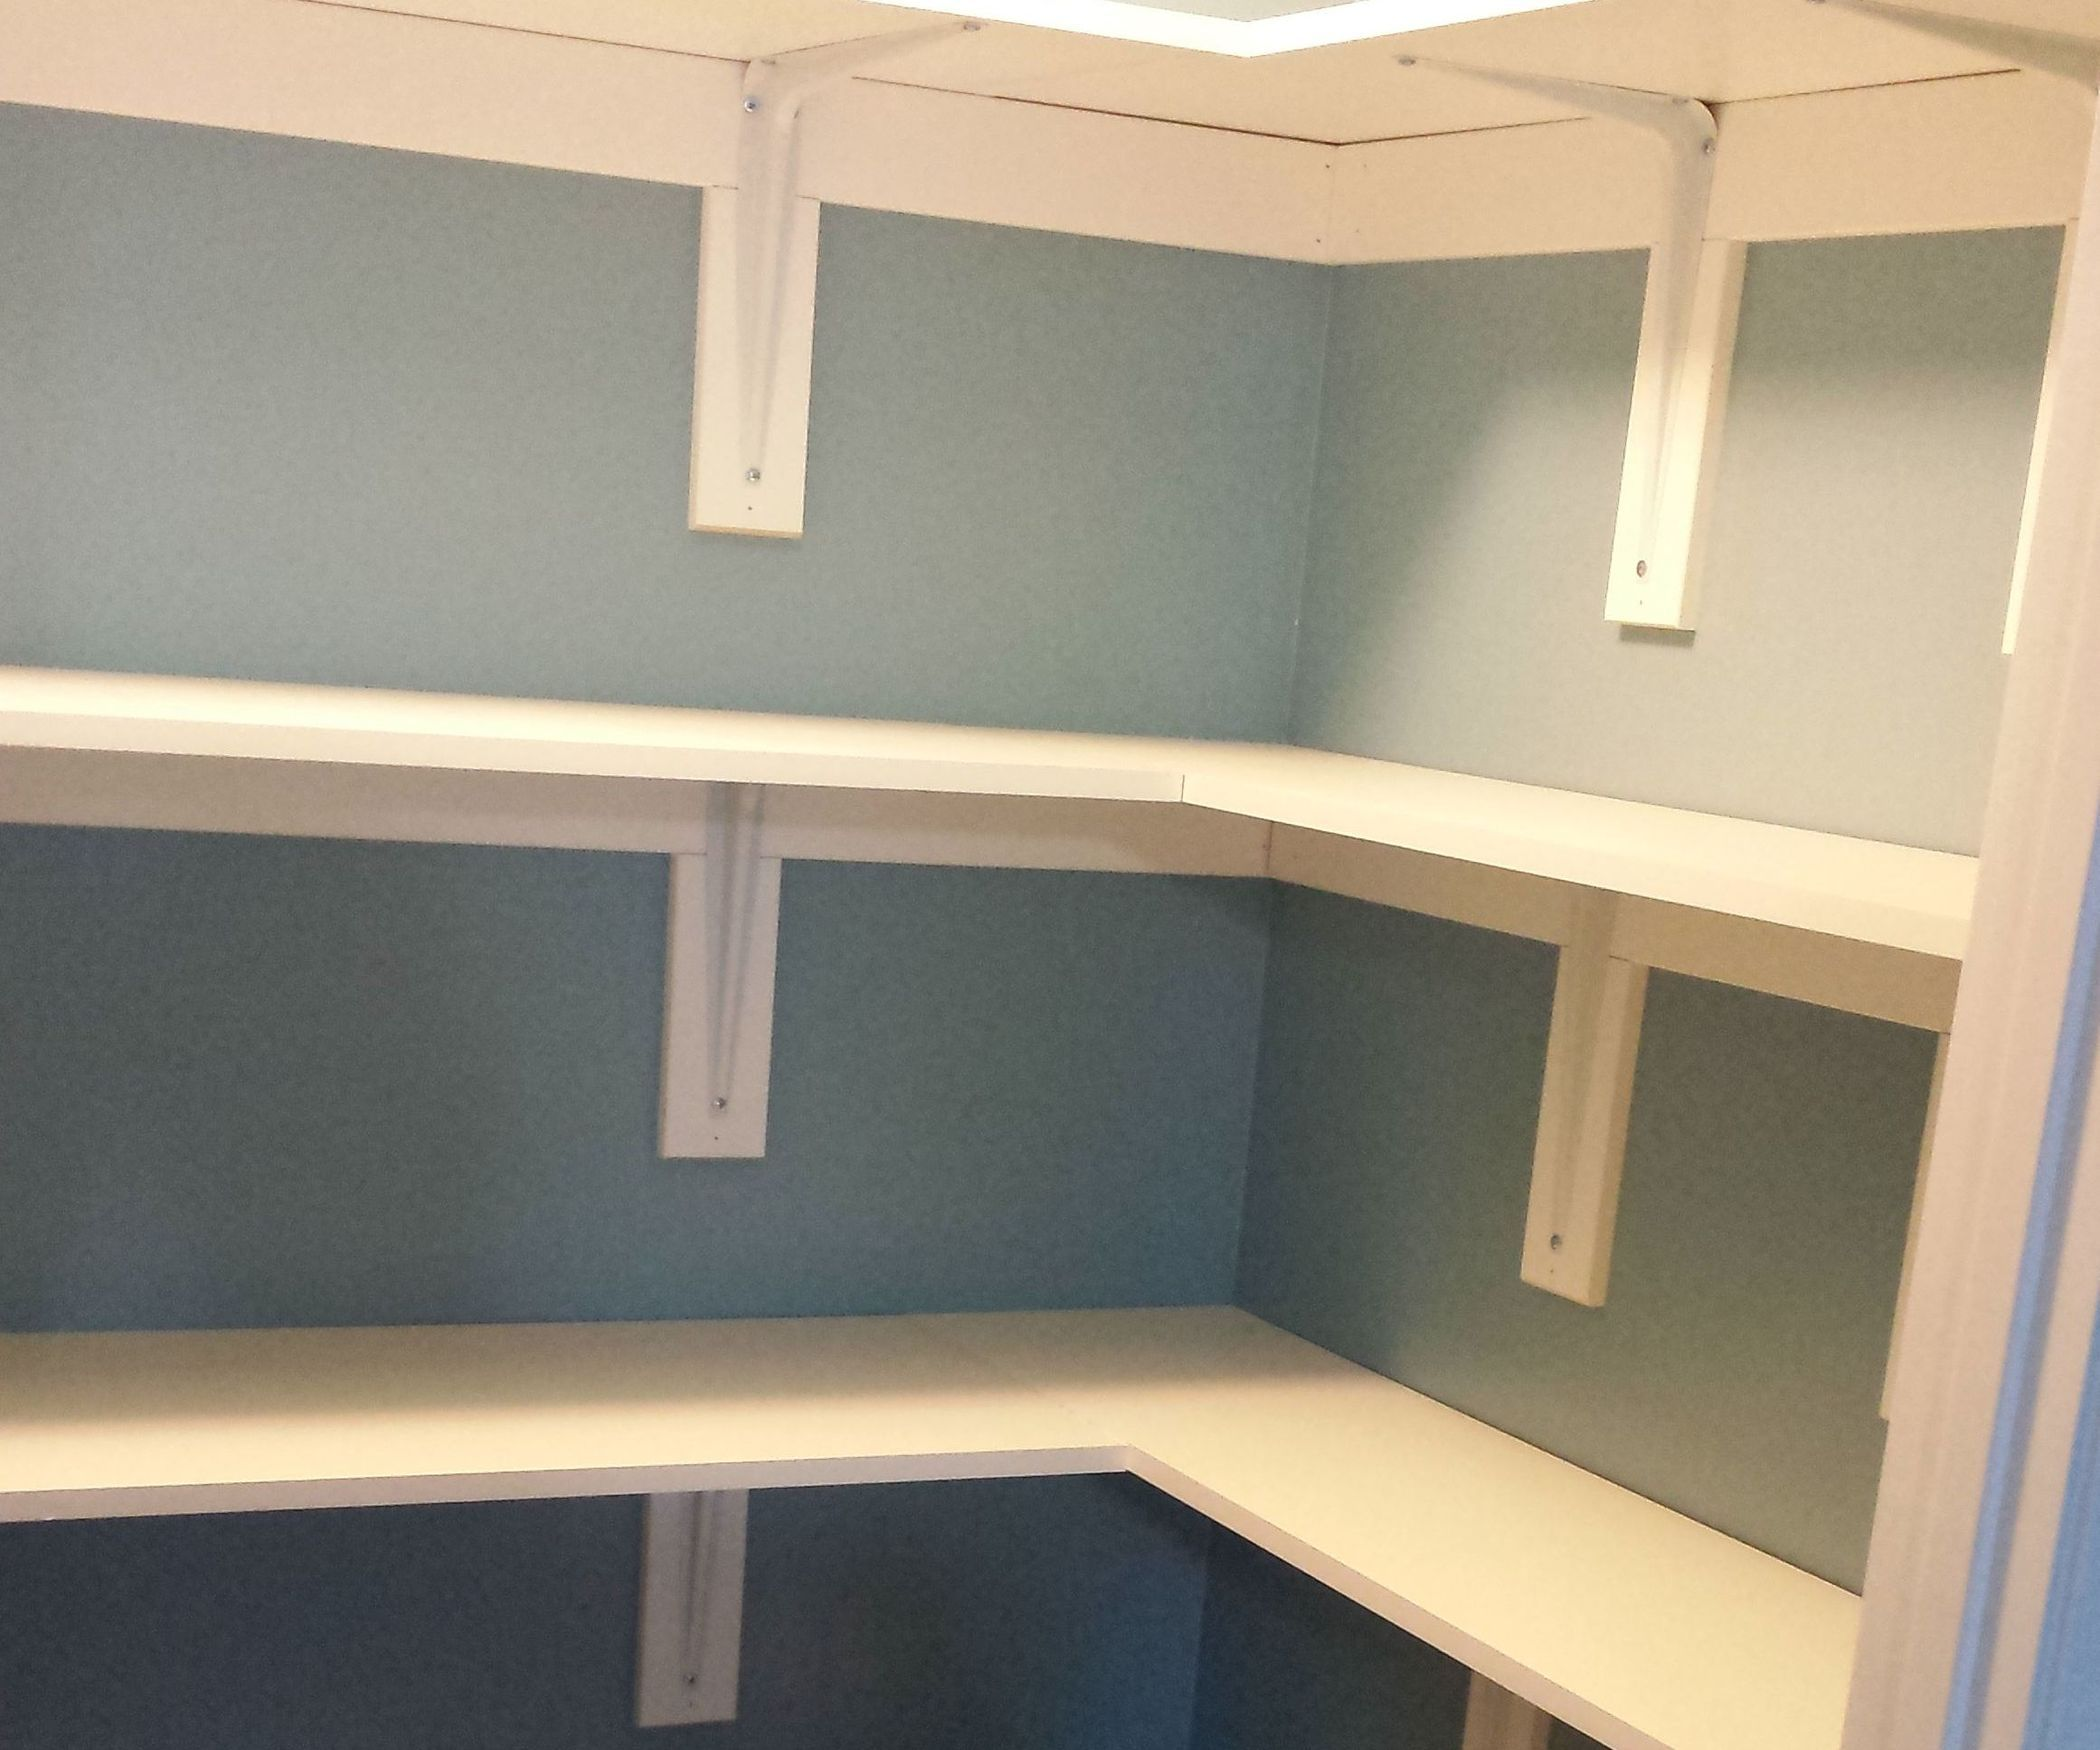 shelving a installation and small architecture systems build wardrobe shelves organizer dividers thesecretconsulcom ideas home closet plans shelf diy wooden plywood adding in how rod clothes rods custom furniture mdf bracket depot from wood scratch for to with design support pinterest